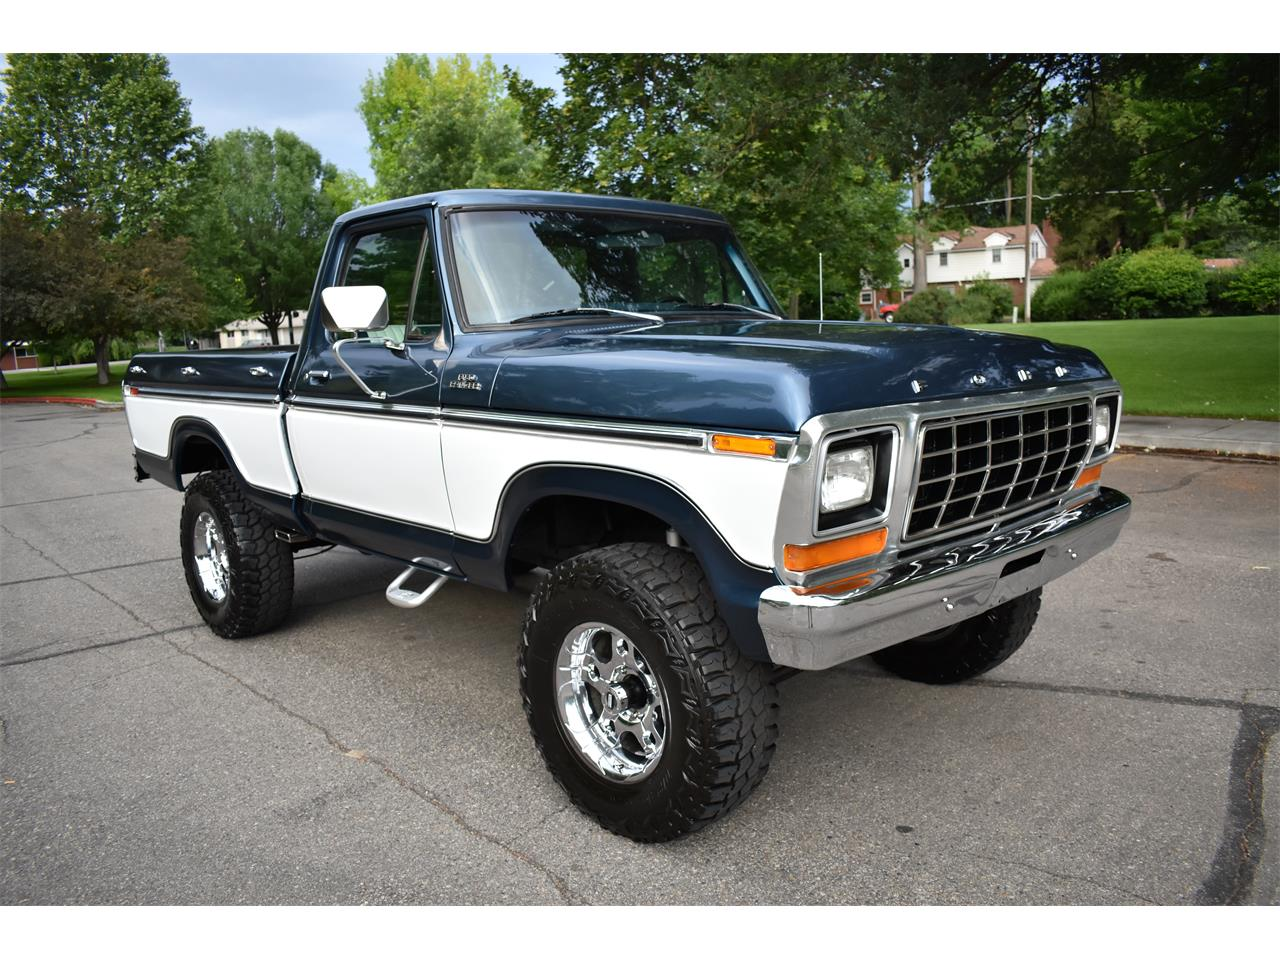 1979 ford f150 cc boise idaho classic classiccars financing inspection insurance transport